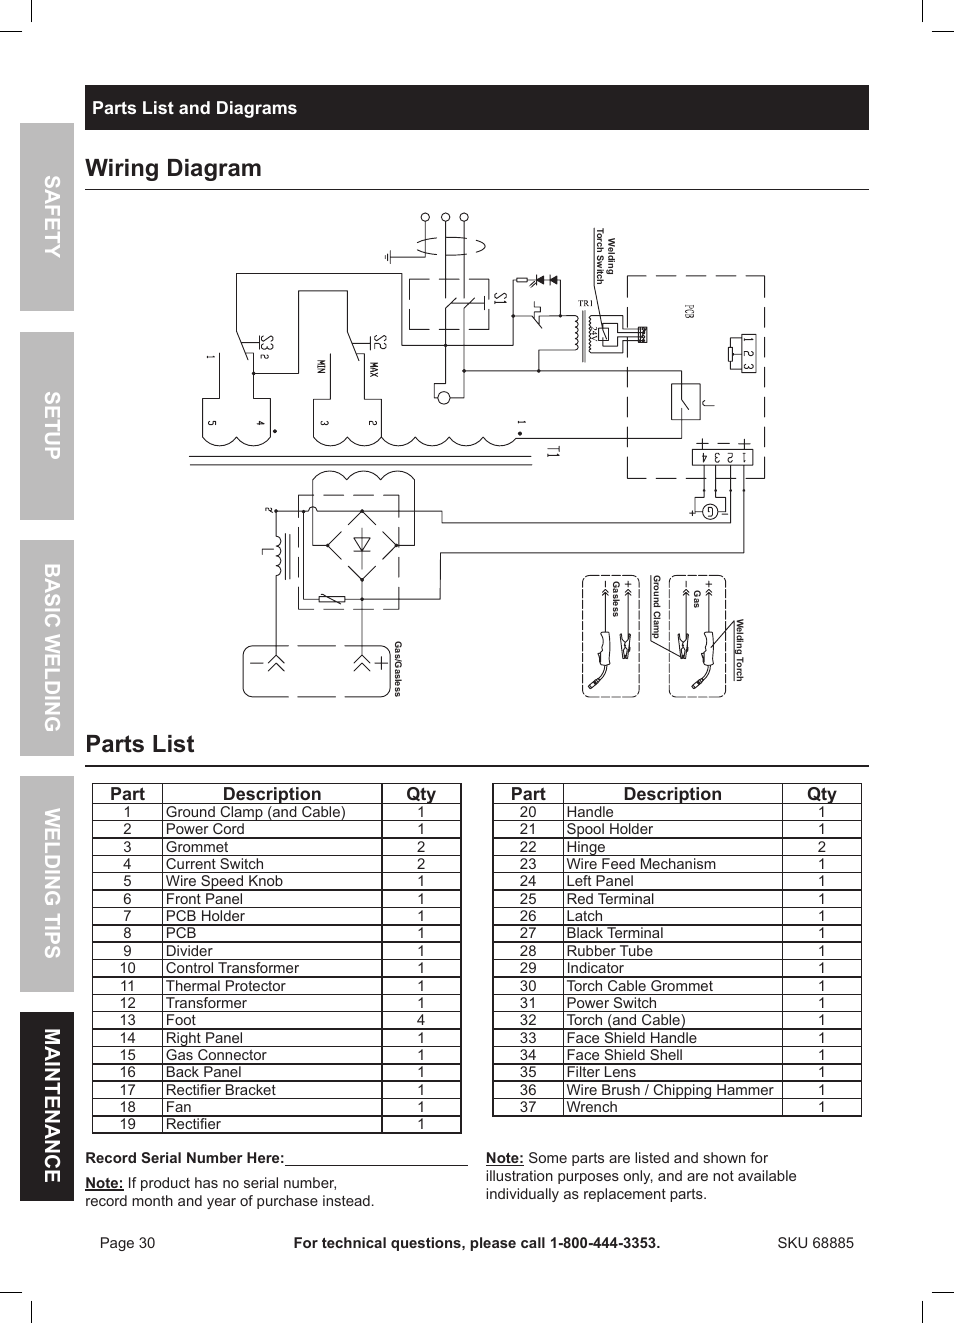 chicago electric parts diagrams free download  u2022 playapk co